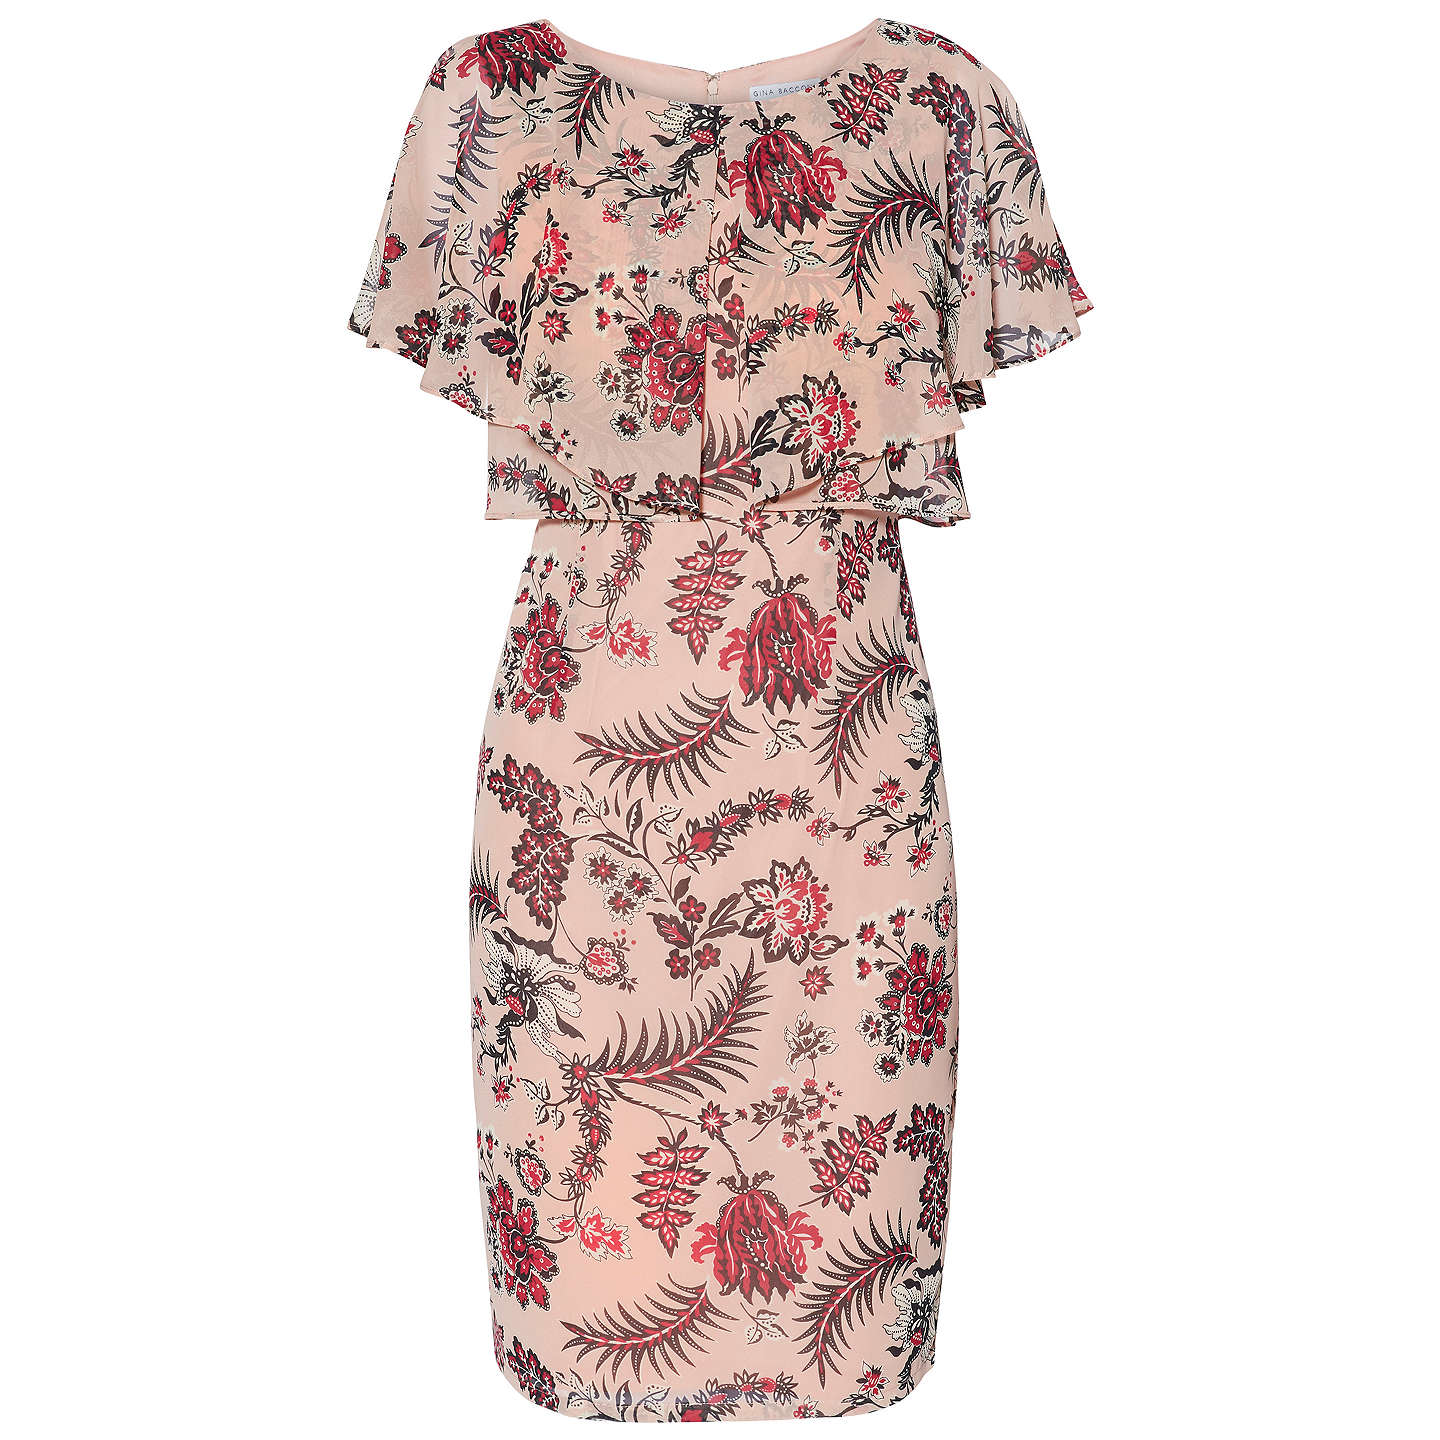 BuyGina Bacconi Maeve Print Dress, Pink, 10 Online at johnlewis.com